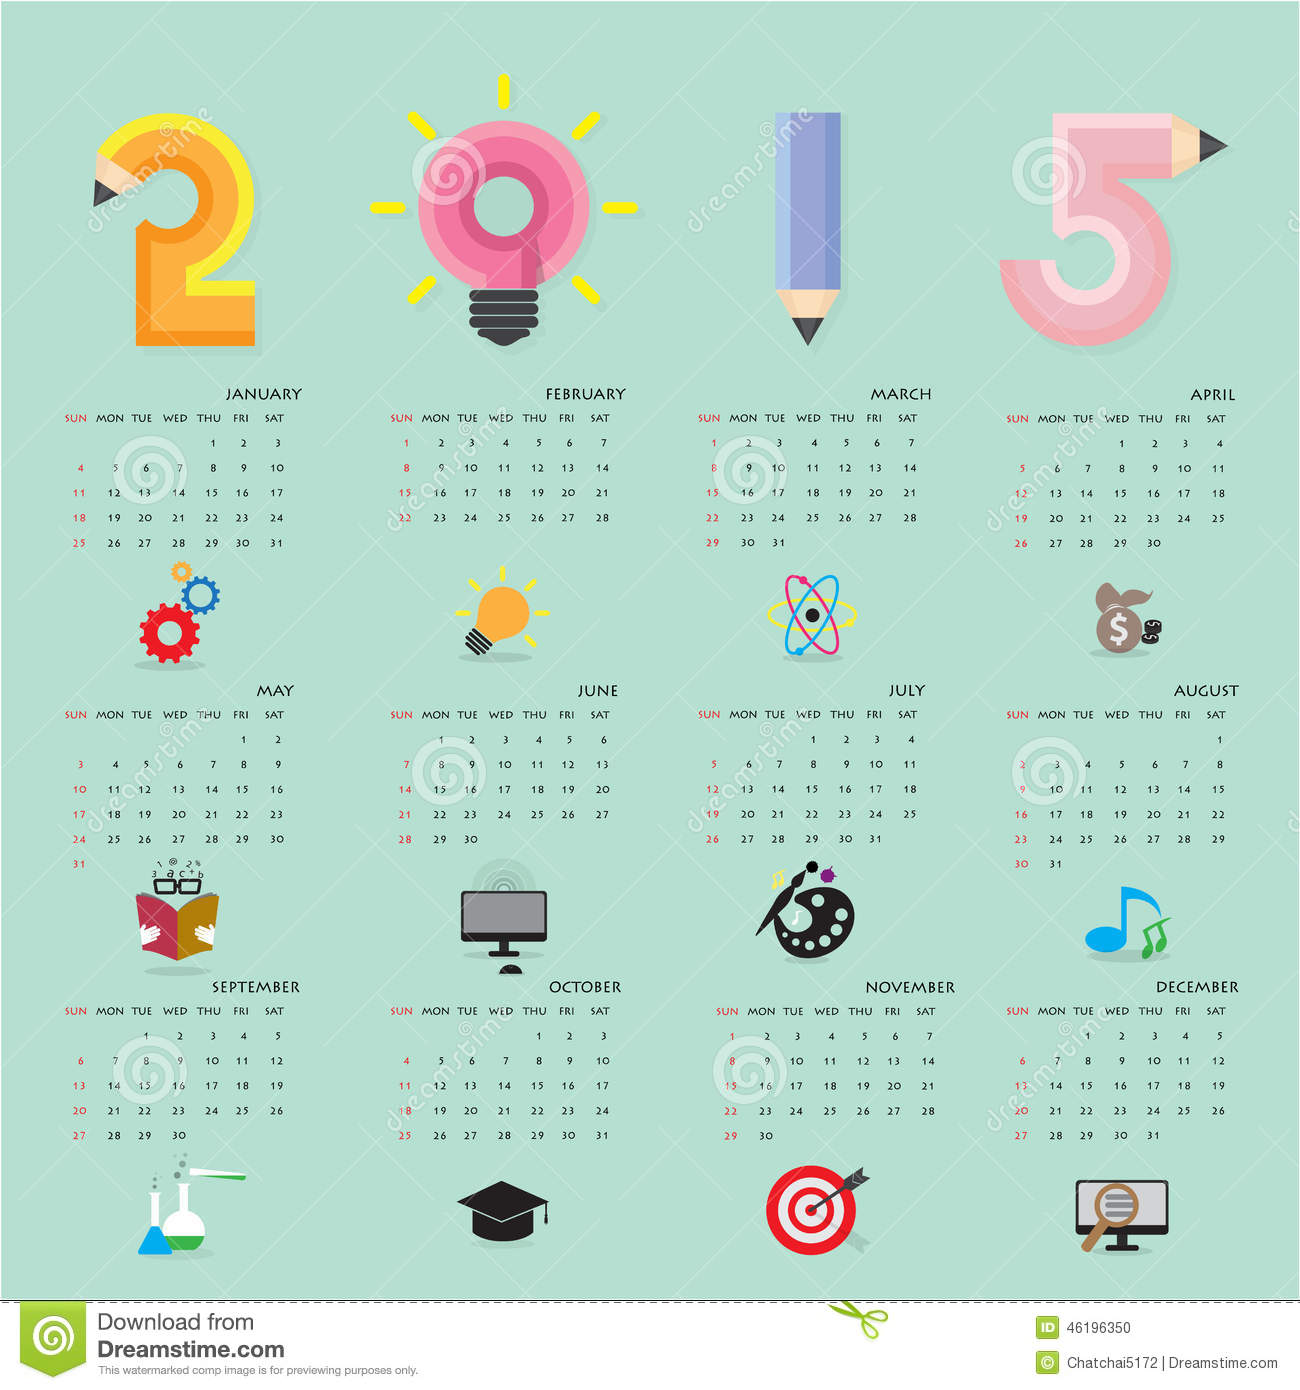 Business Calendar Design : Creative calendar design template with business or